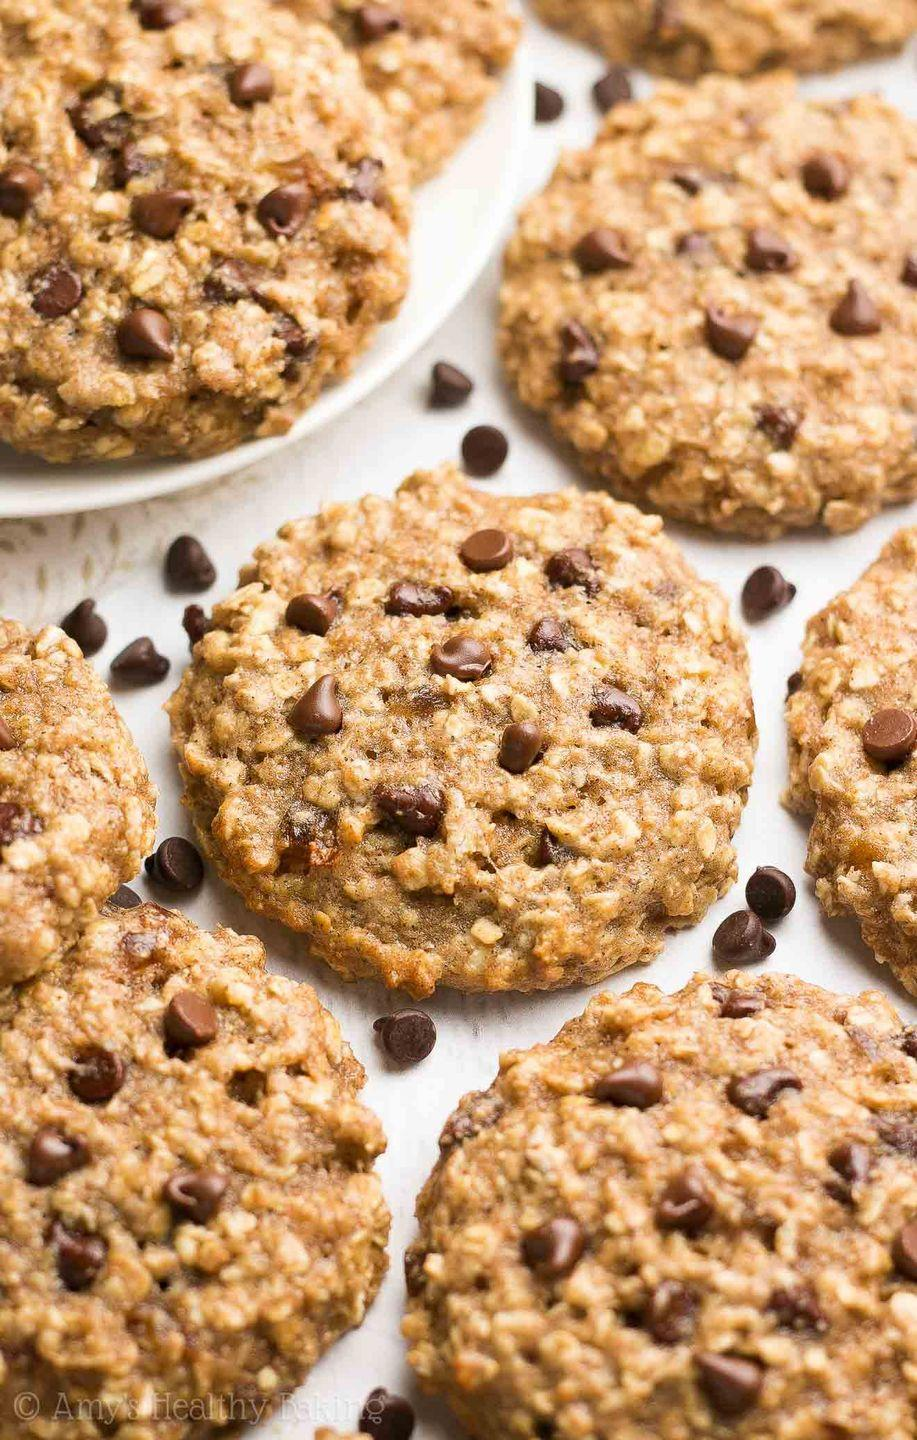 """<p>Every Midwesterner has a recipe for """"bars"""" up their sleeve, and in North Dakota, the combination of oatmeal and caramel never fails. These cookies meld the two, with the addition of melty chocolate chips.</p><p>Get the recipe from <a href=""""https://amyshealthybaking.com/blog/2017/06/15/caramel-chocolate-chip-oatmeal-cookies/"""" rel=""""nofollow noopener"""" target=""""_blank"""" data-ylk=""""slk:Amy's Healthy Baking"""" class=""""link rapid-noclick-resp"""">Amy's Healthy Baking</a>.</p>"""